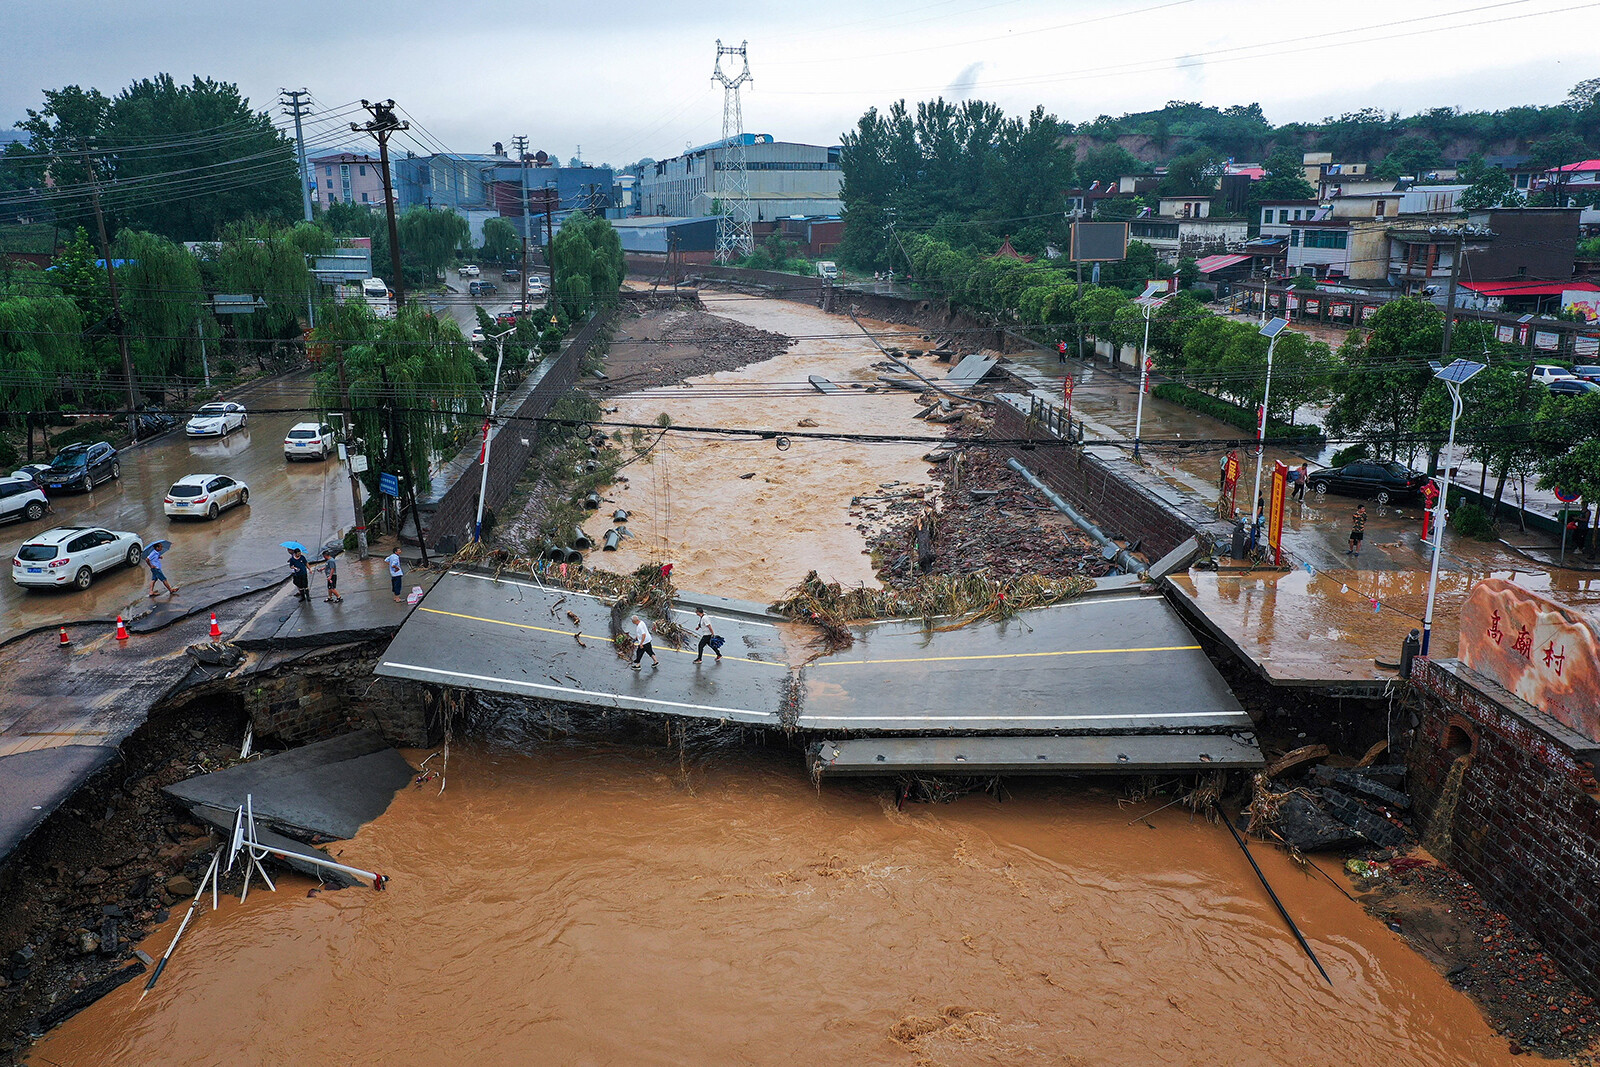 <i>STR/AFP/Getty Images</i><br/>A damaged bridge following heavy rains which caused severe flooding in Gongyi in China's central Henan province on July 21.